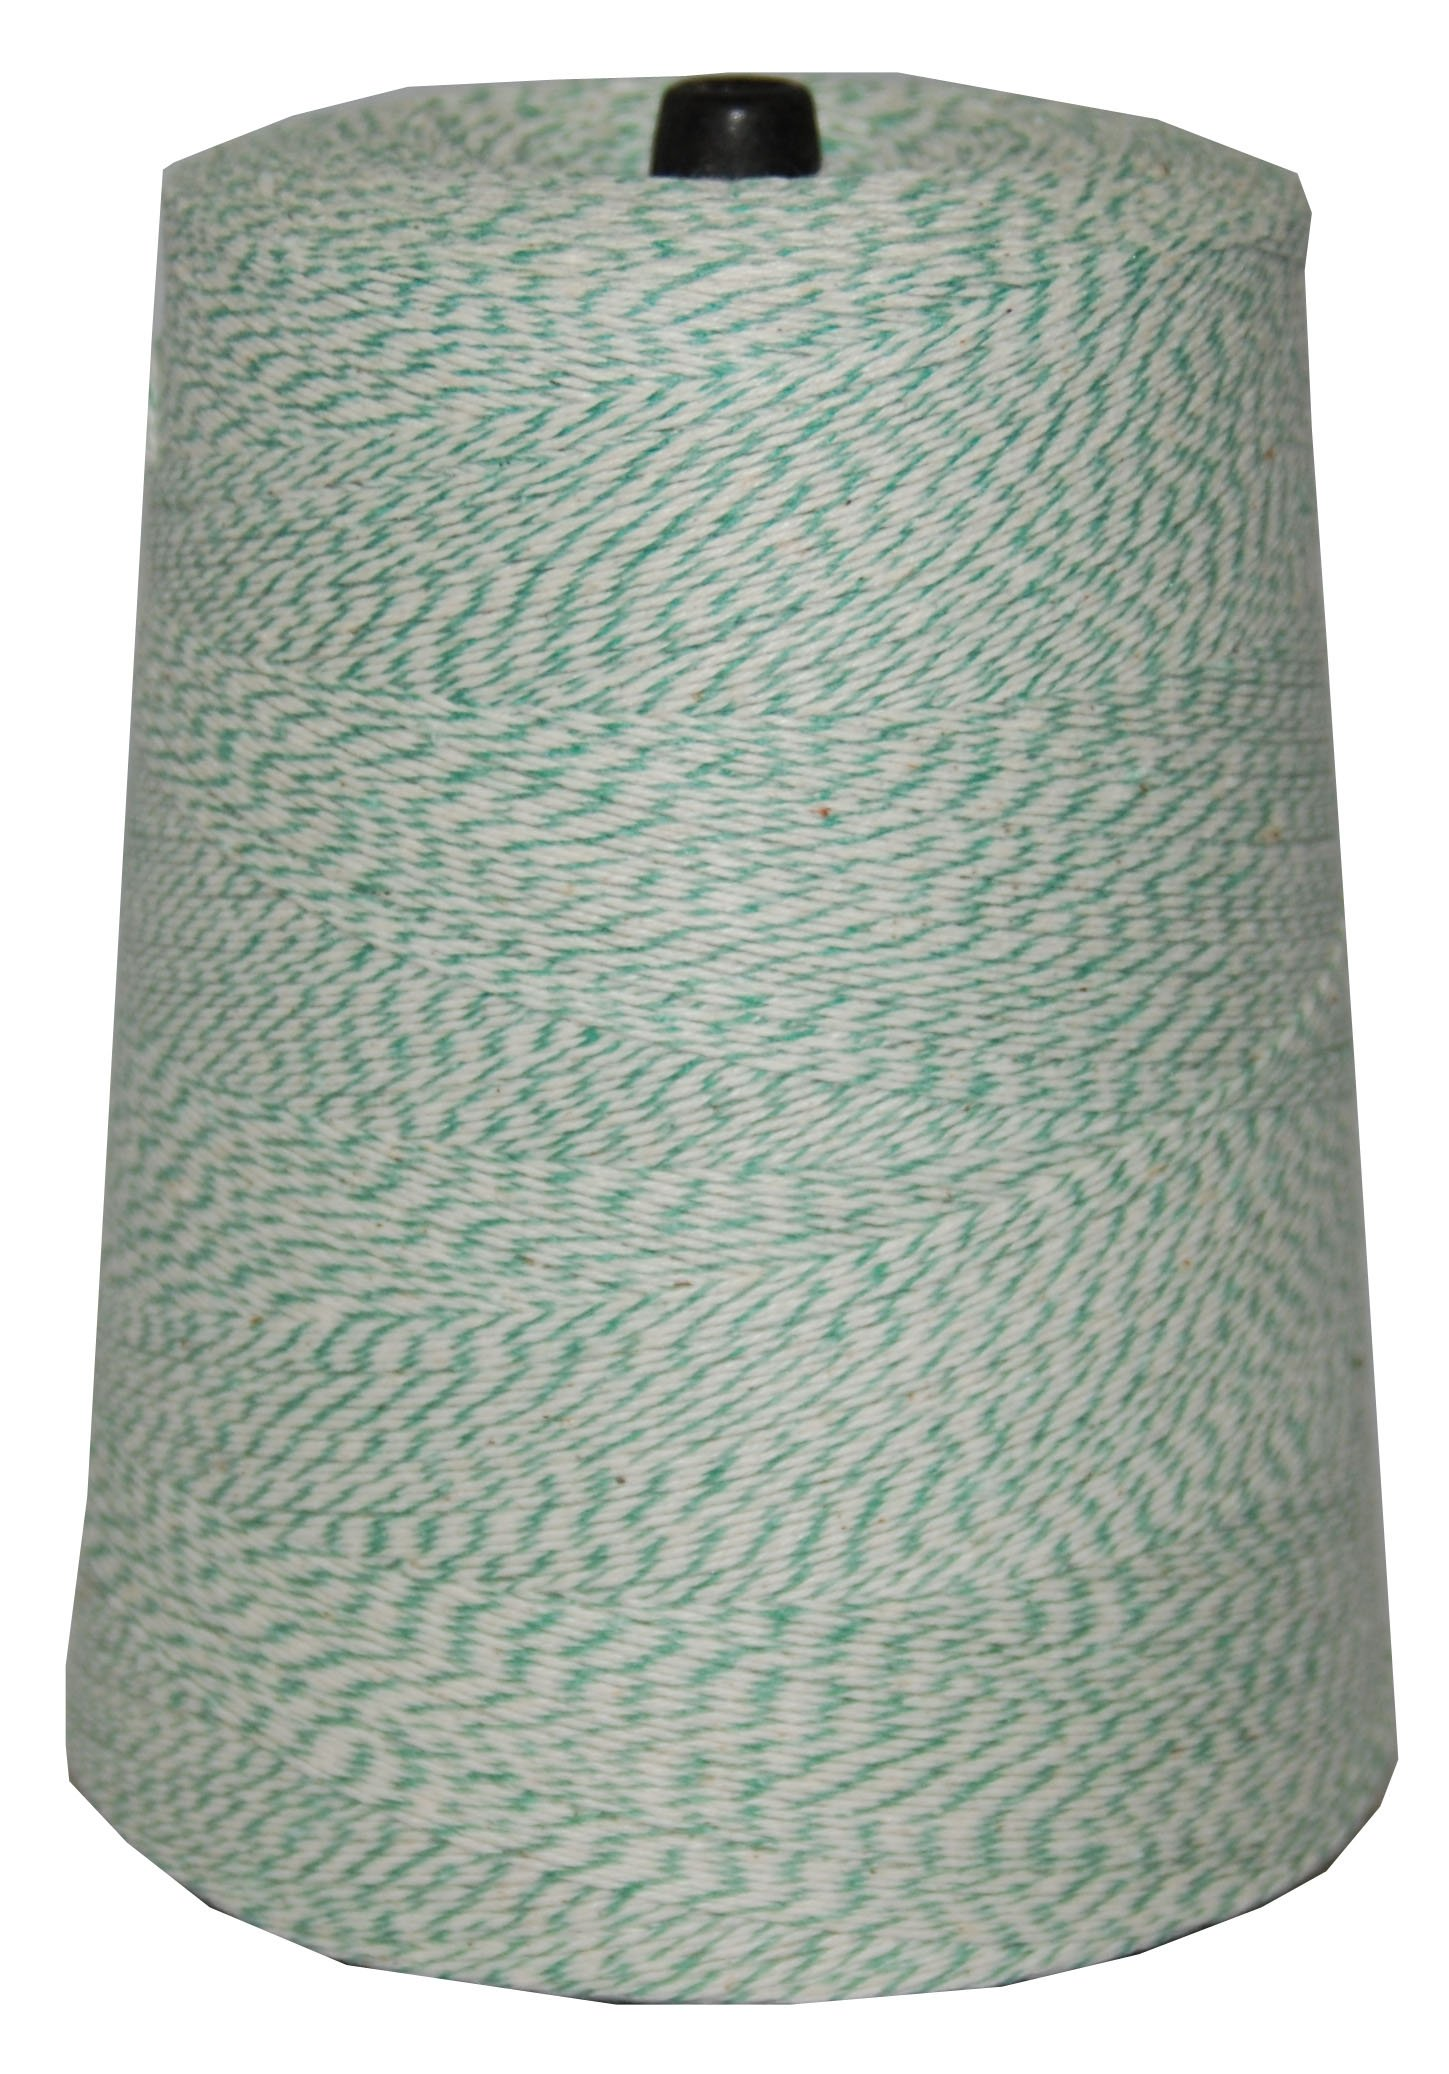 T.W Evans Cordage 07-042 4 Poly Variegated 2-Pound Cone, 9600-Feet, Green and White